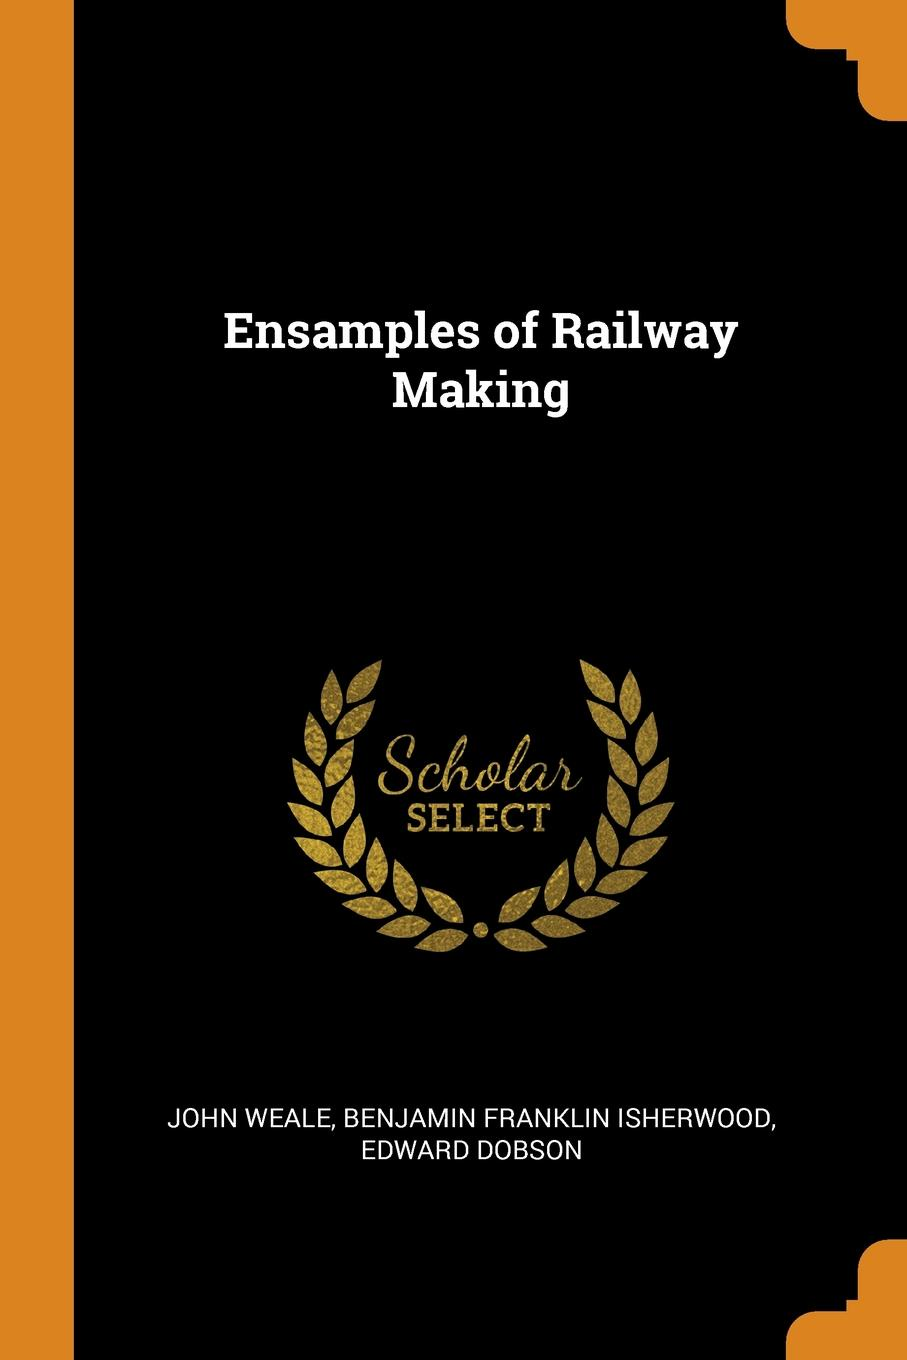 John Weale, Benjamin Franklin Isherwood, Edward Dobson. Ensamples of Railway Making